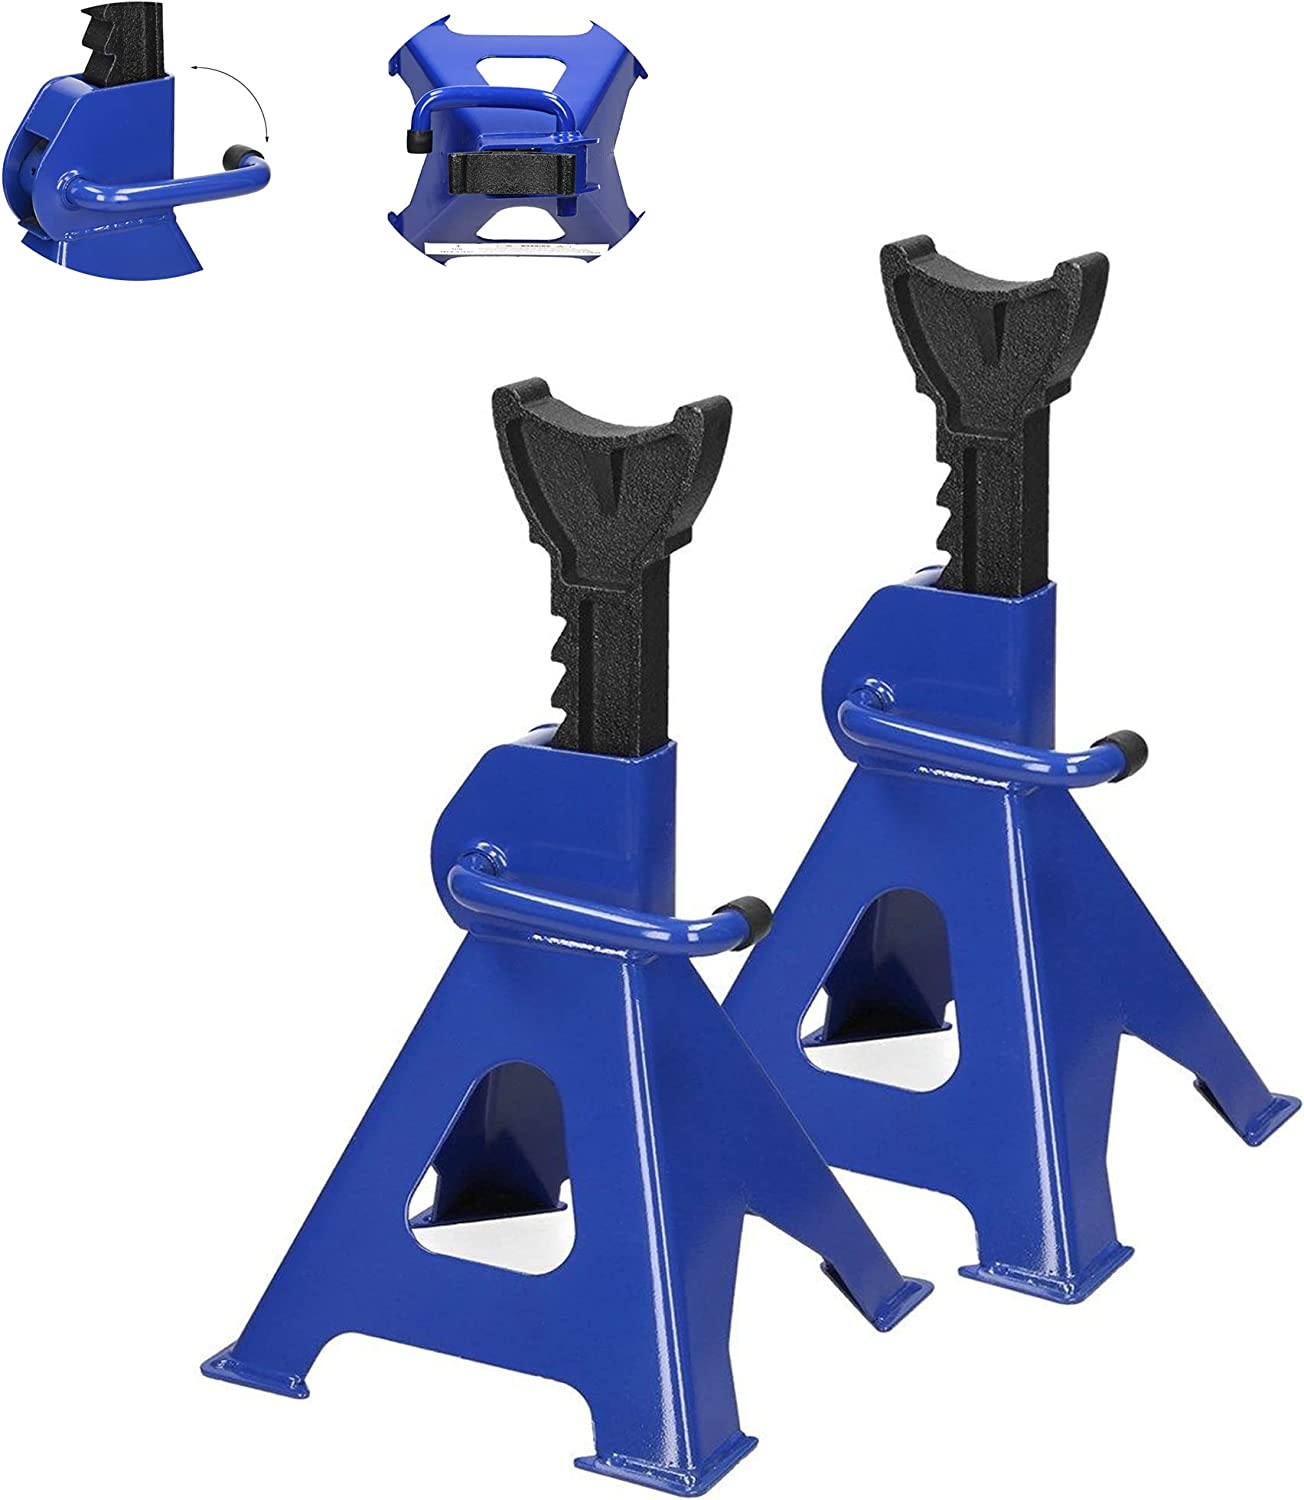 3 New arrival Ton Jack Stands Elegant Pair; Heavy Duty M 5 Lightweight Only Pounds